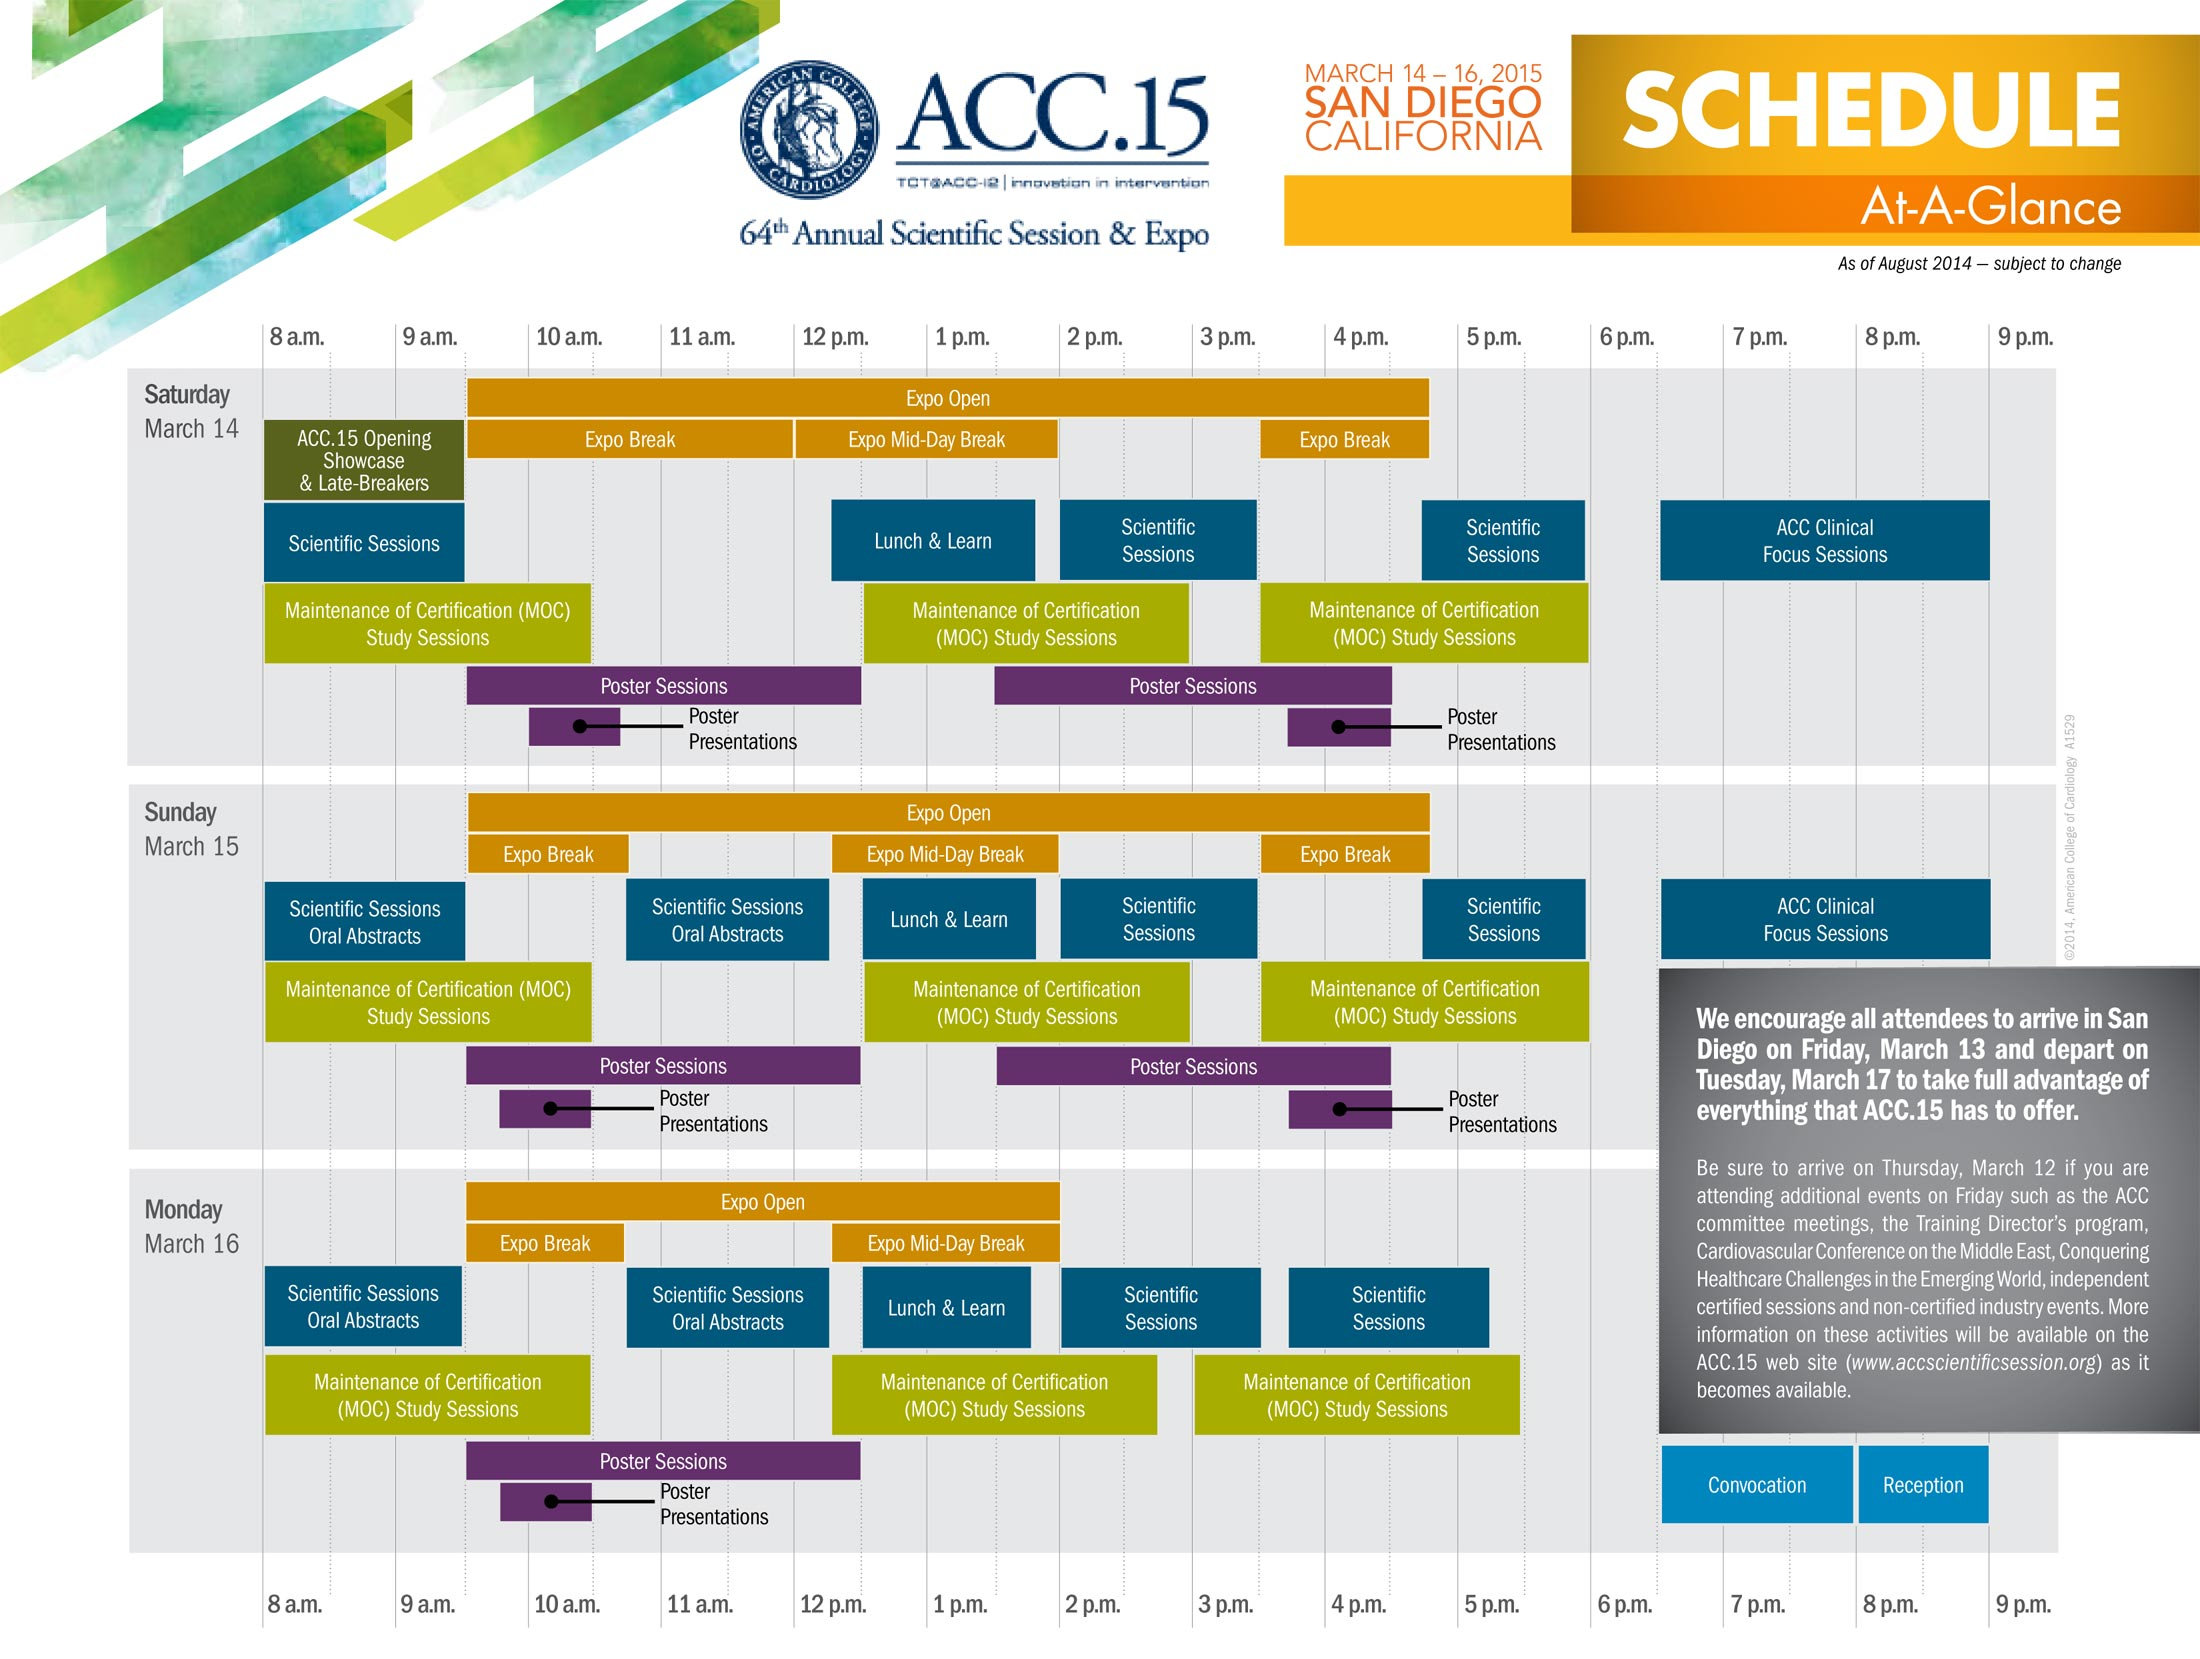 20 Images Of Conference Schedule At A Glance Template | Unemeuf in Schedule At A Glance Template